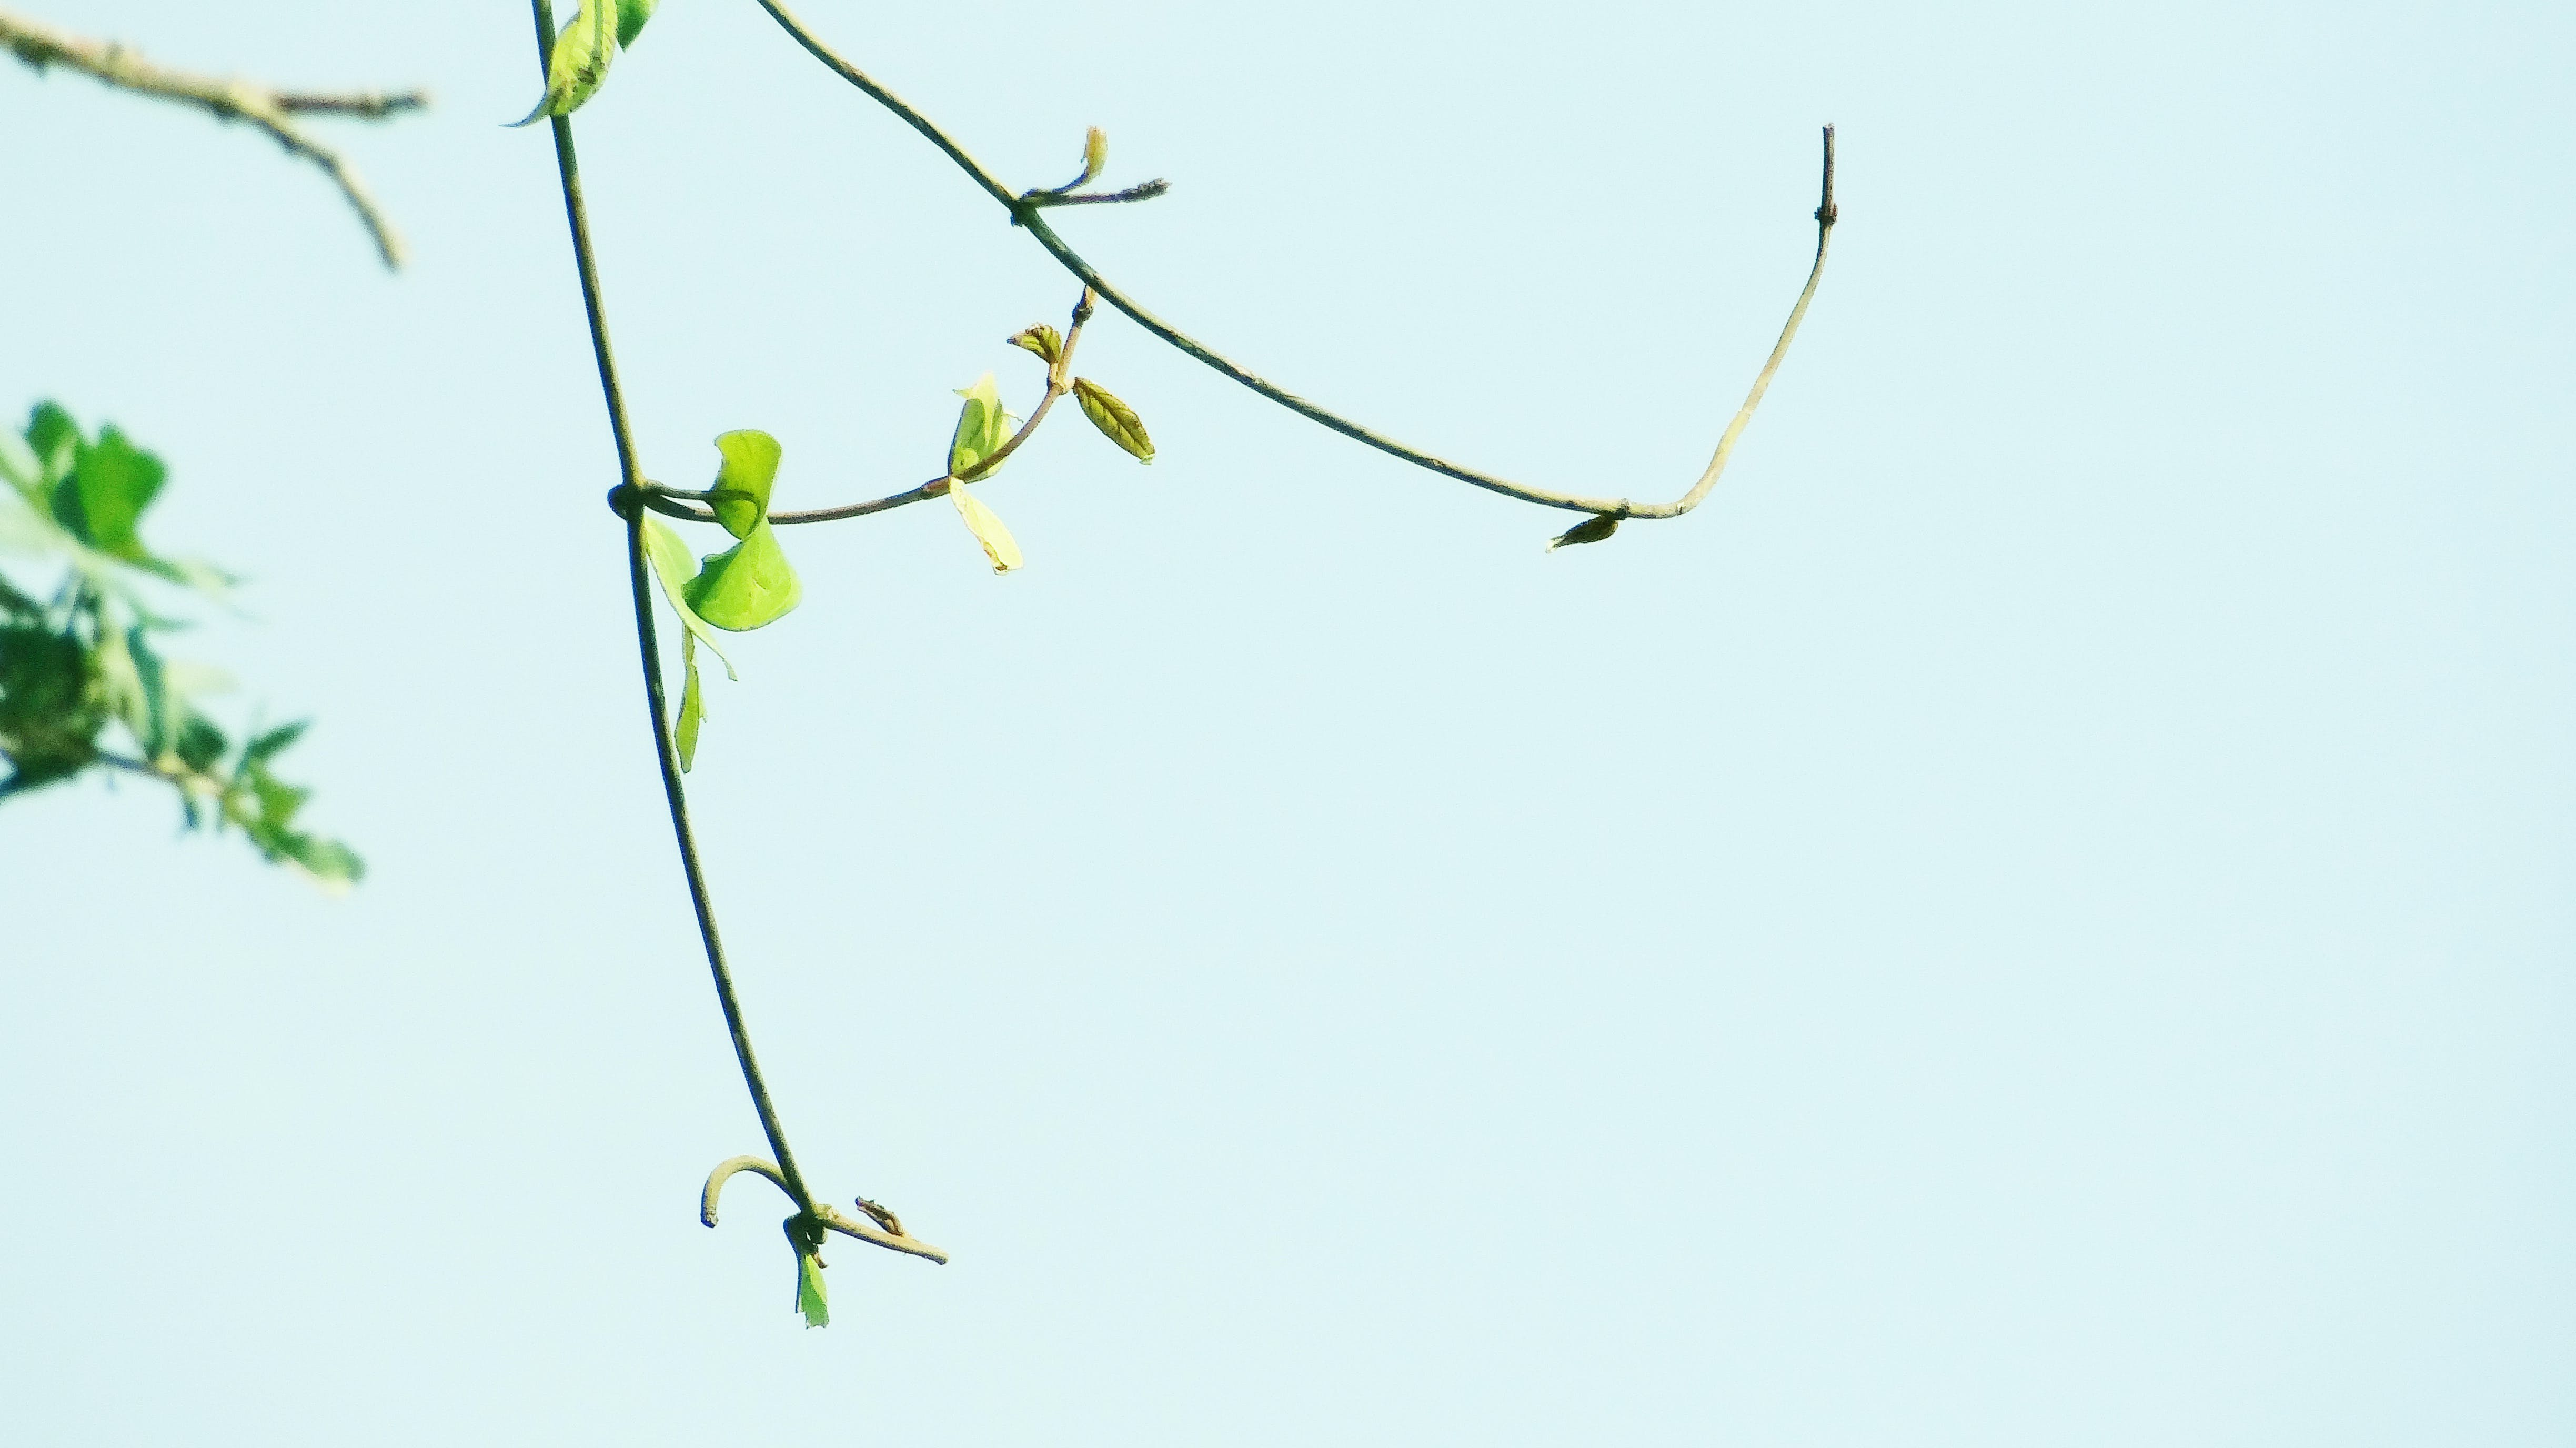 Free stock photo of branch, leaves, portrait, trees